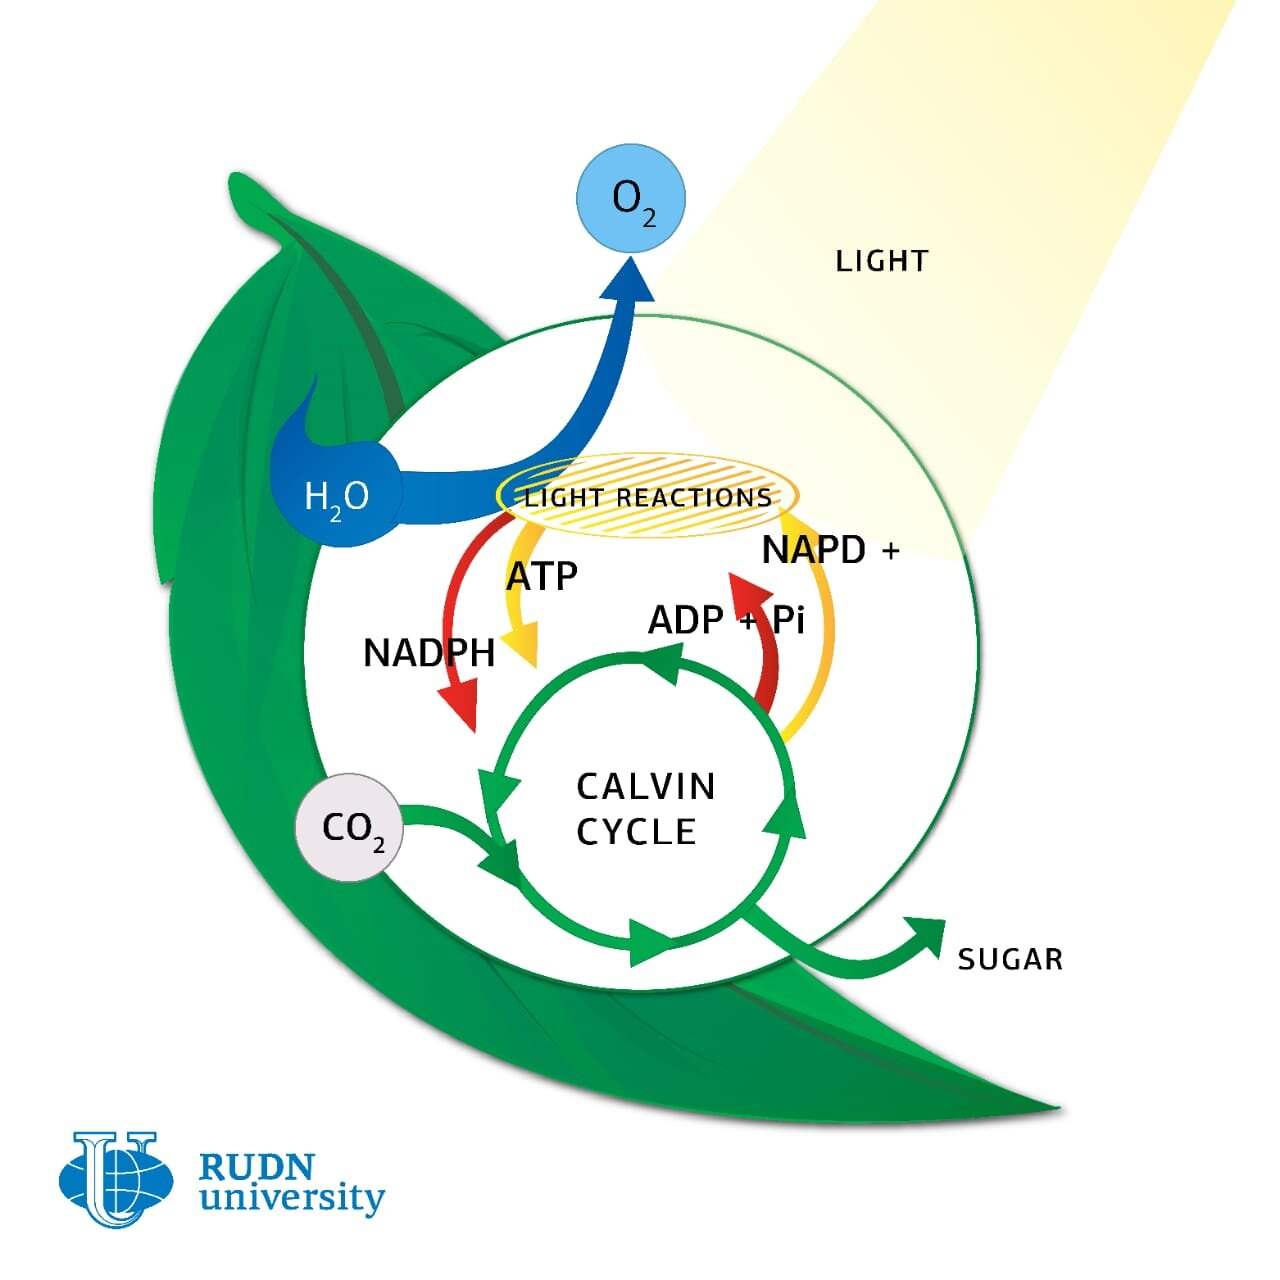 Biologist Develops New Model For Analyzing Photosynthesis In Vivo This natural process makes it possible for plants and other organisms to create food when it is required. analyzing photosynthesis in vivo